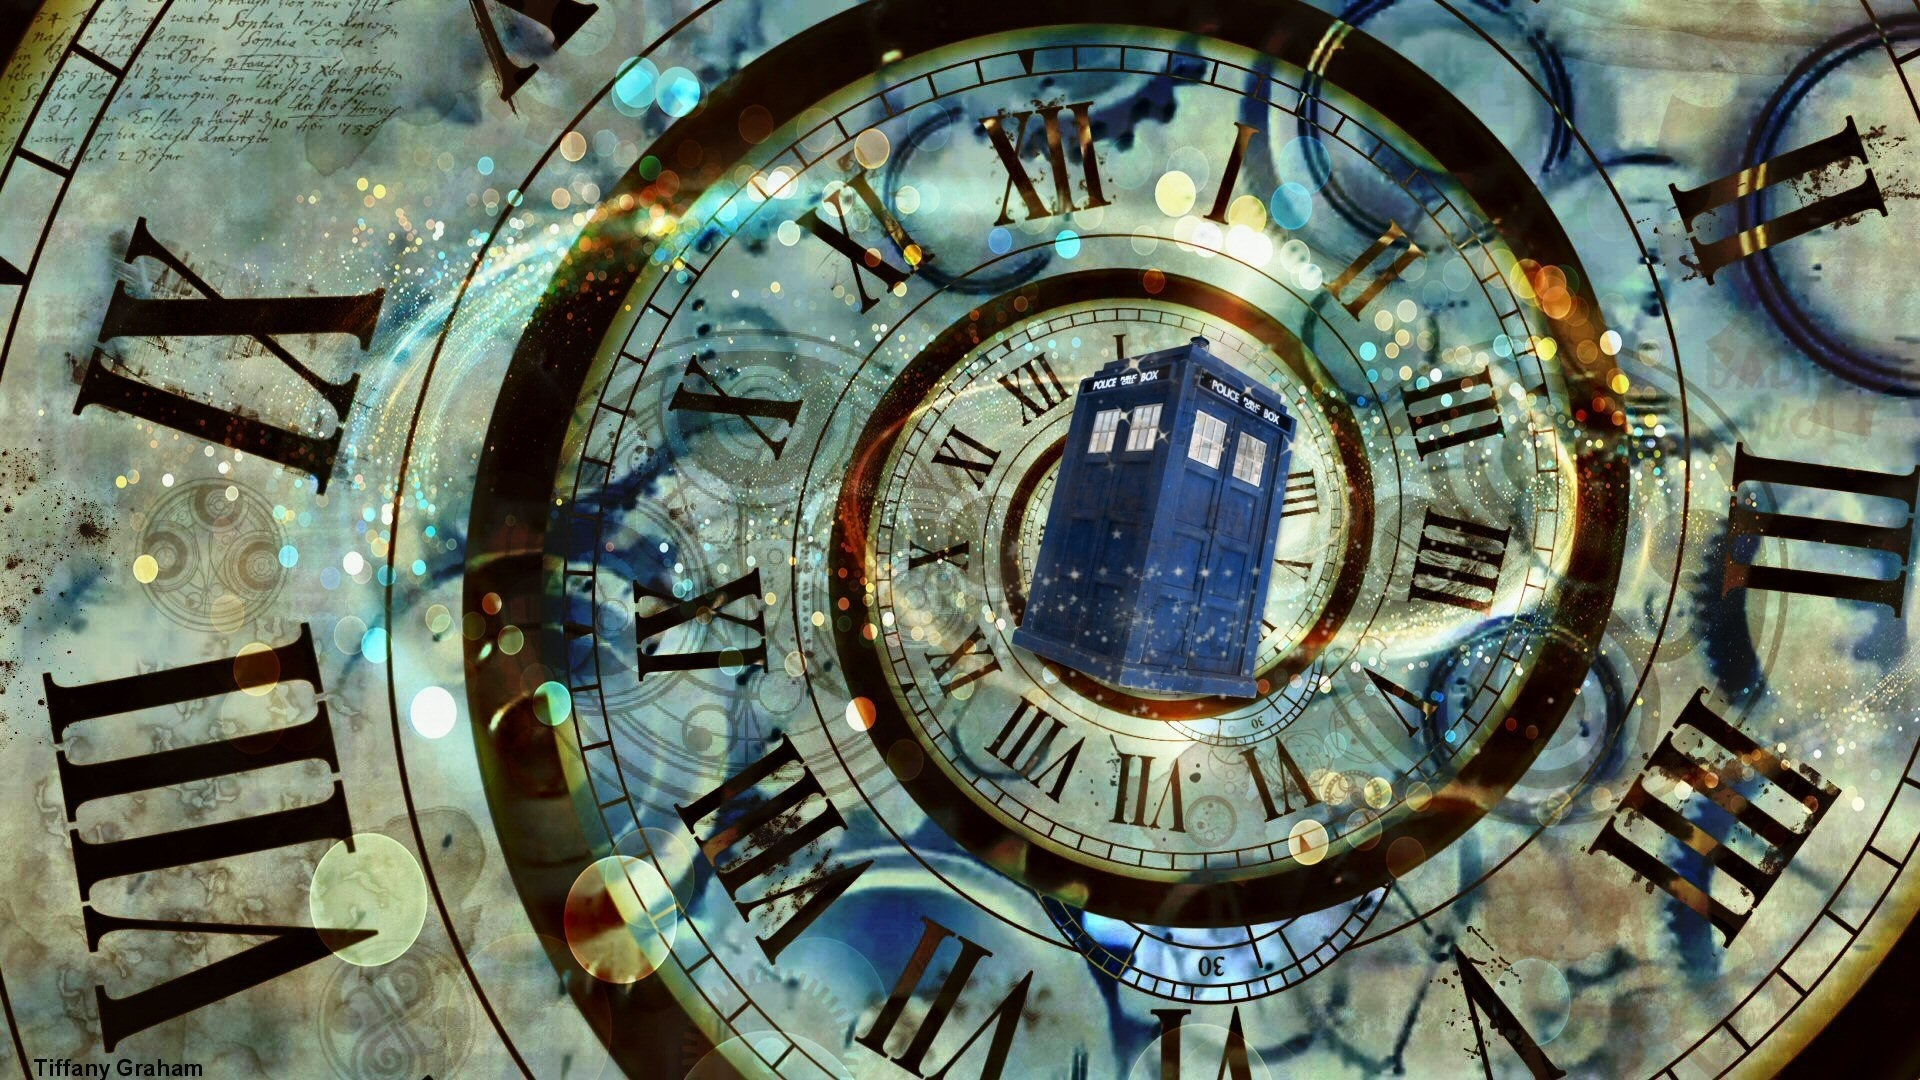 doctor who tardis wallpapers hd resolution ~ desktop wallpaper box